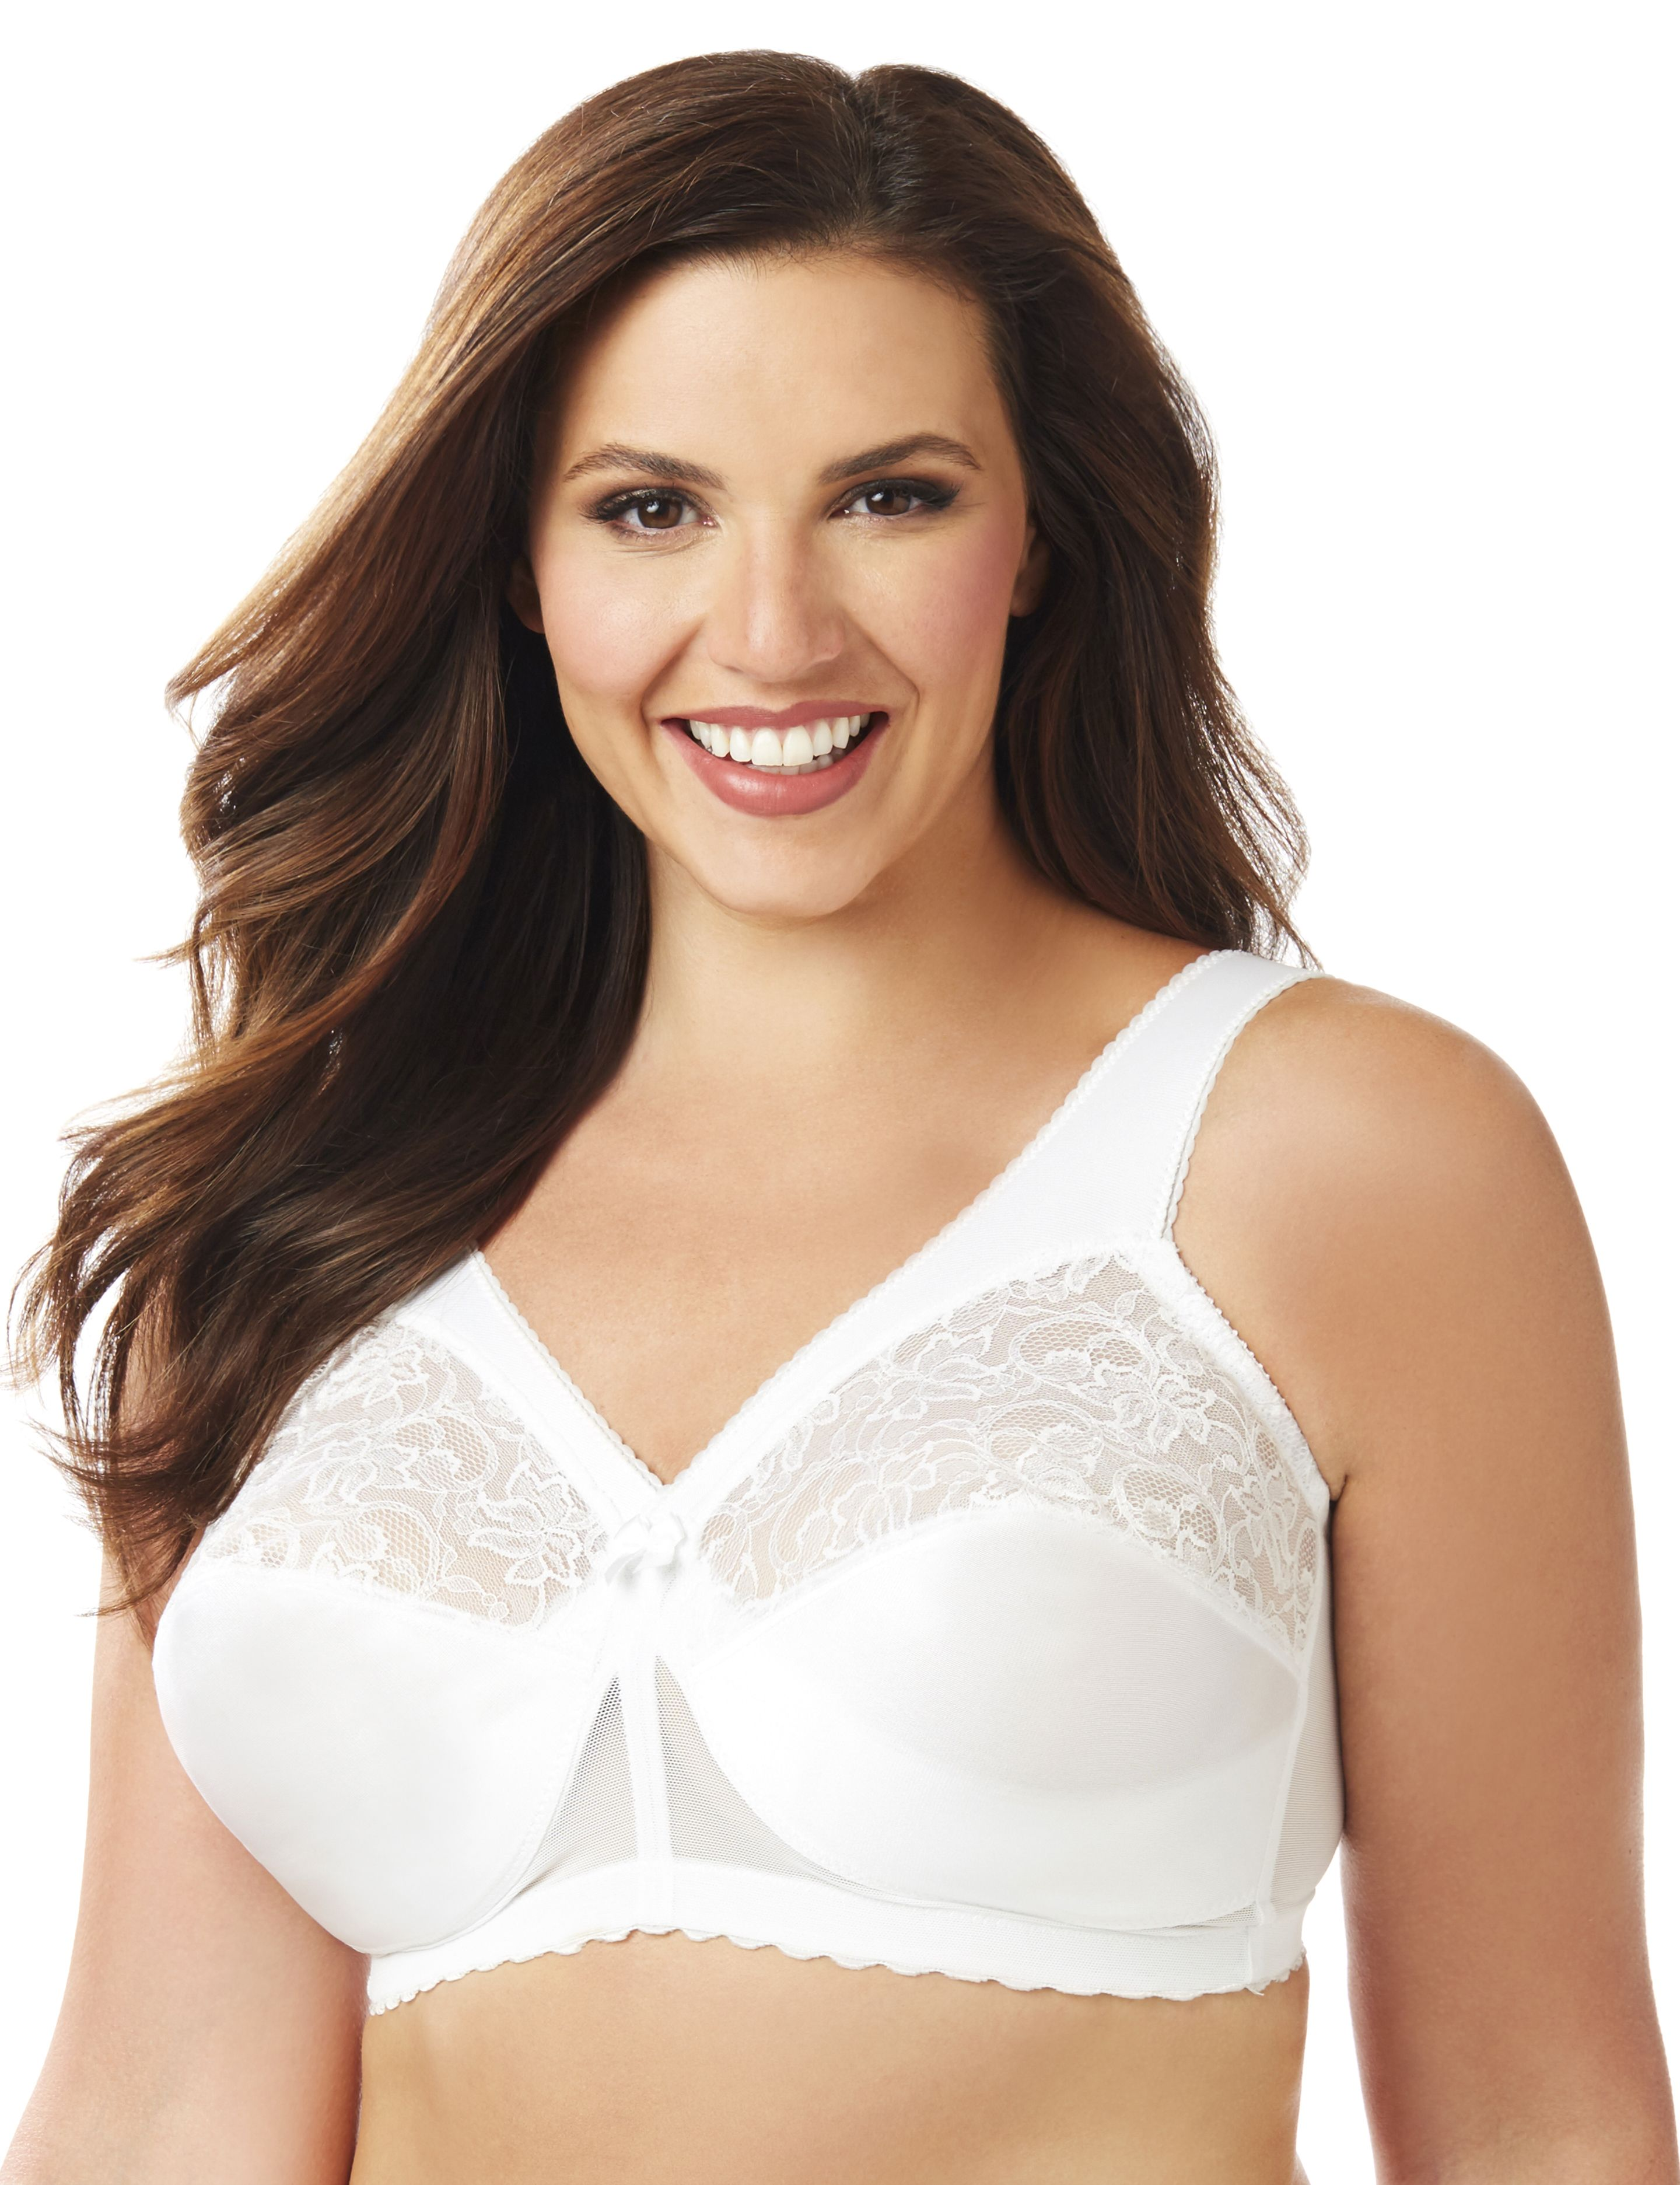 Glamorise 1000 Magic Lift No-Wire Bra Glamorise 1000 Magic Lift No-Wire Bra MP-000156863